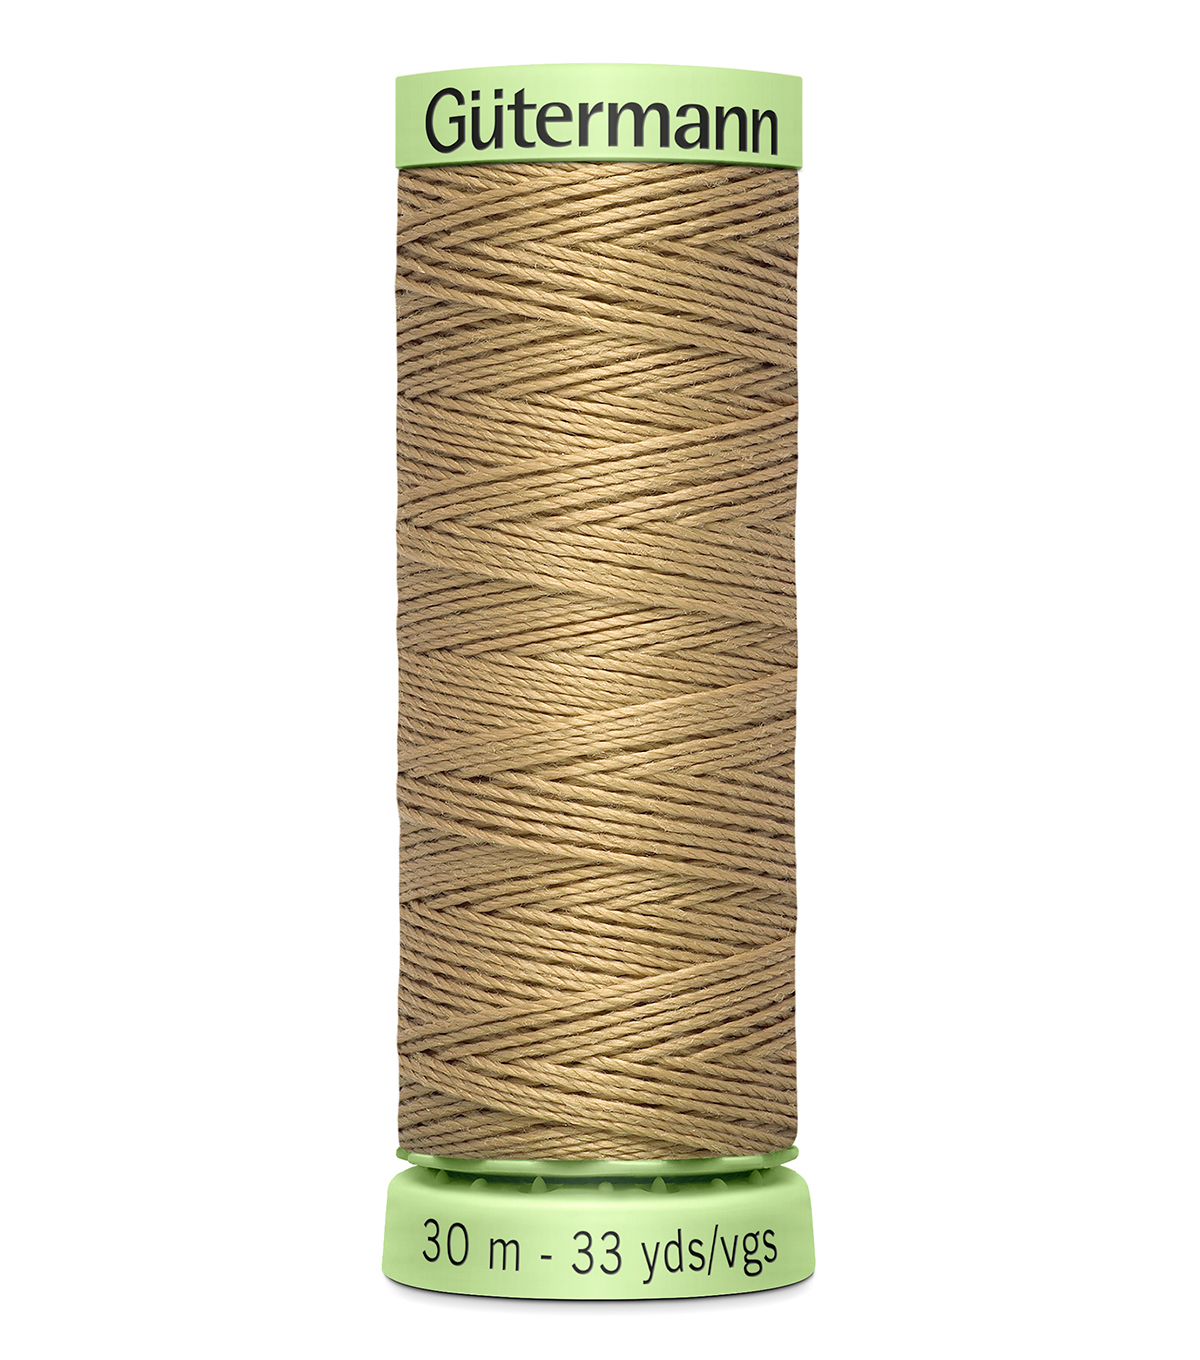 Top Stitch Heavy Duty Thread 33 Yards-, 520 Wheat